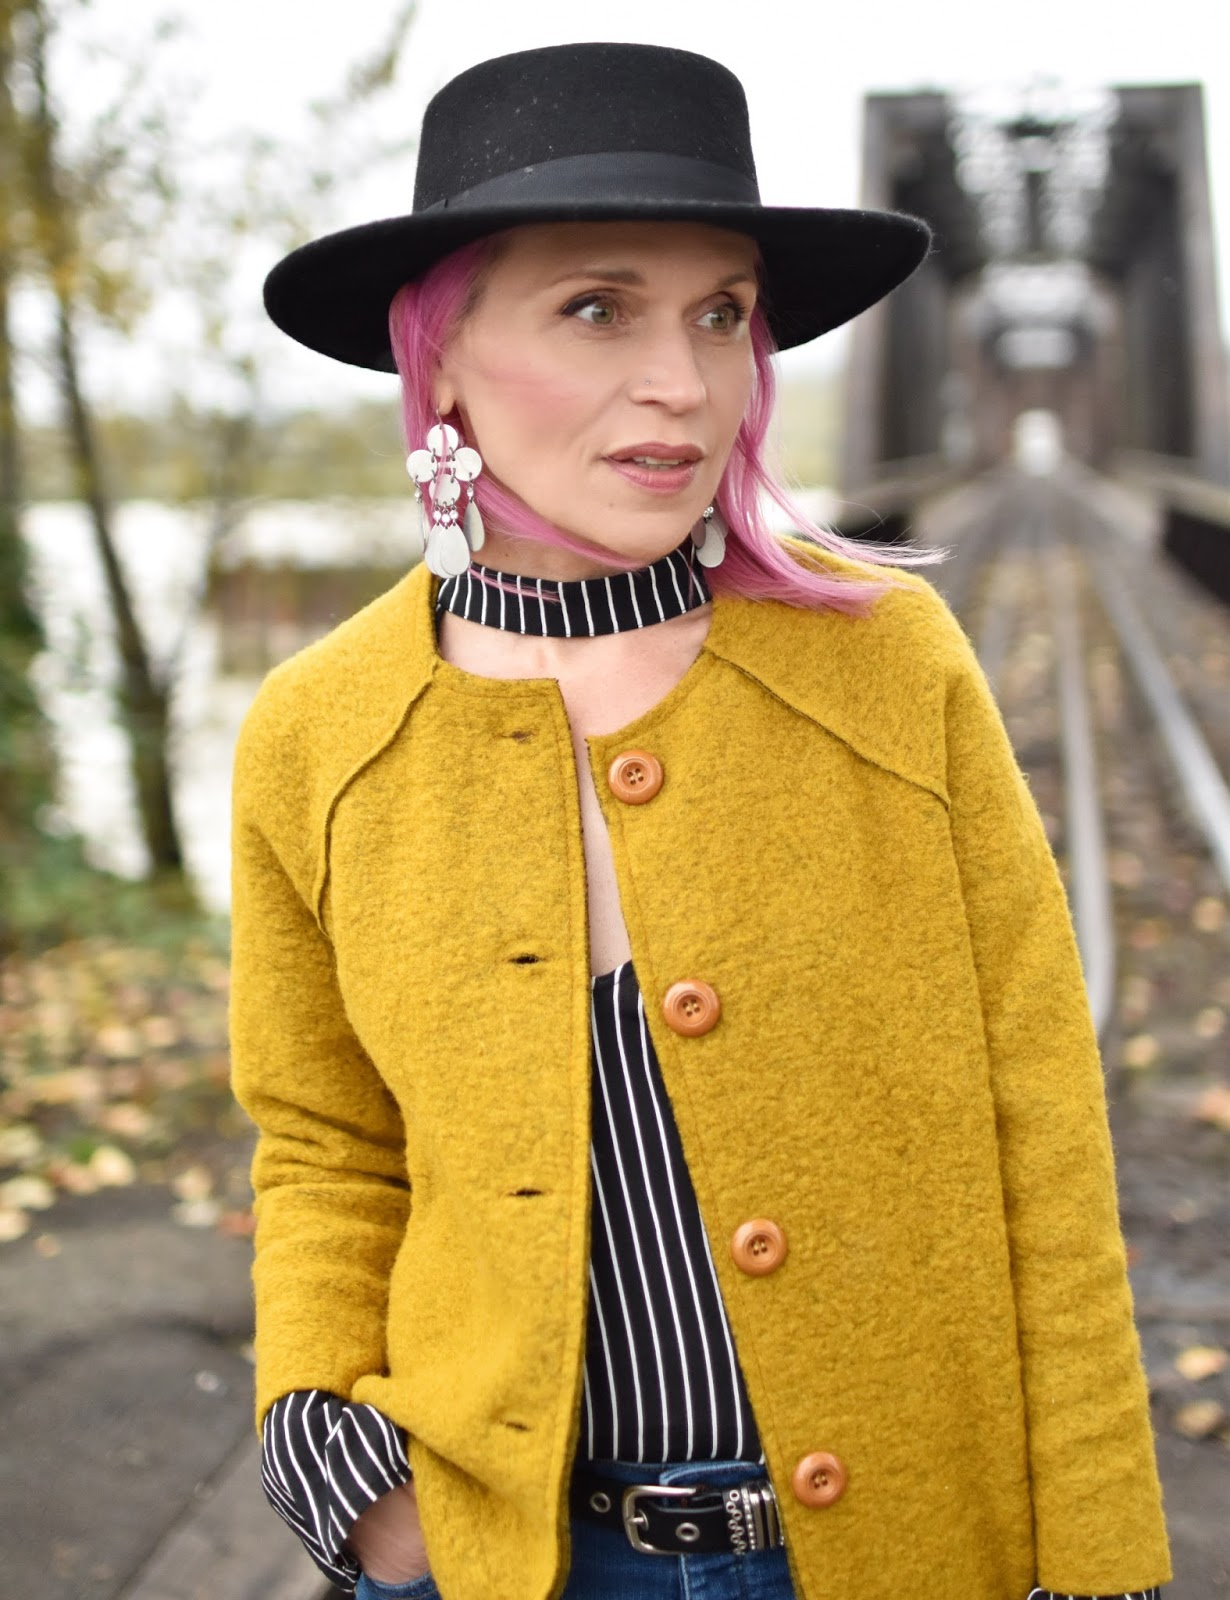 Monika Faulkner outfit inspiration - mustard wool jacket, striped blouse, flat-top felt fedora